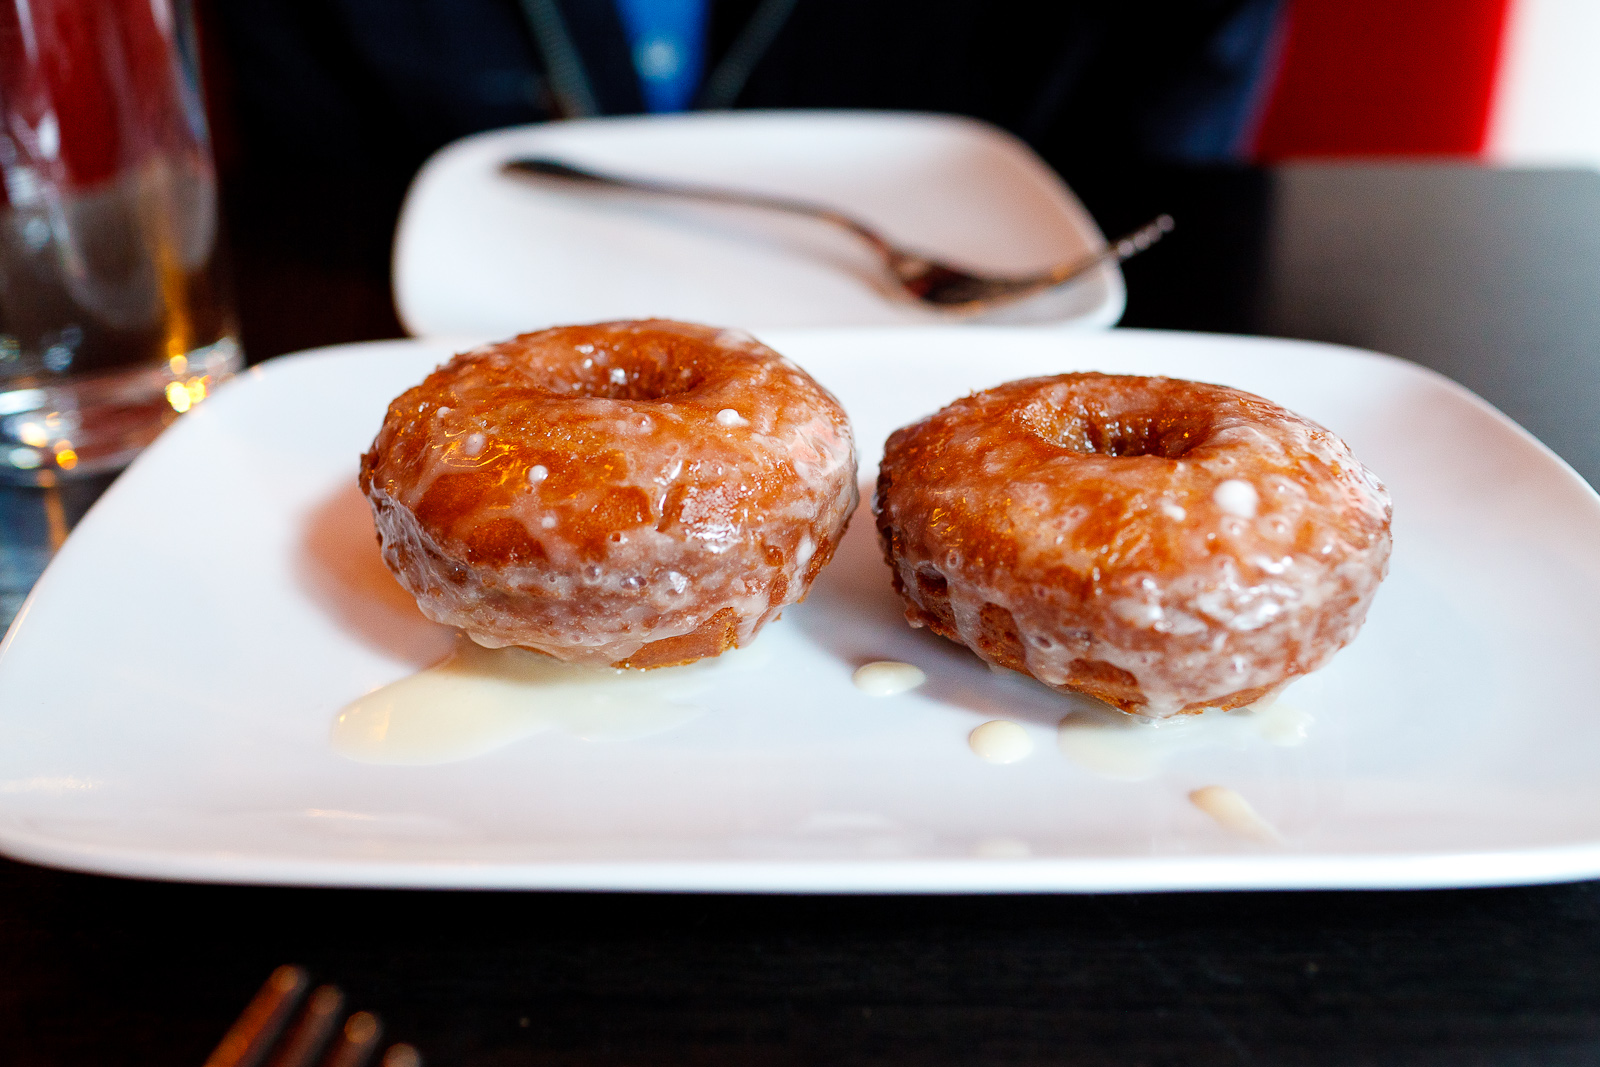 Cider-glazed doughnuts, made to order ($6)